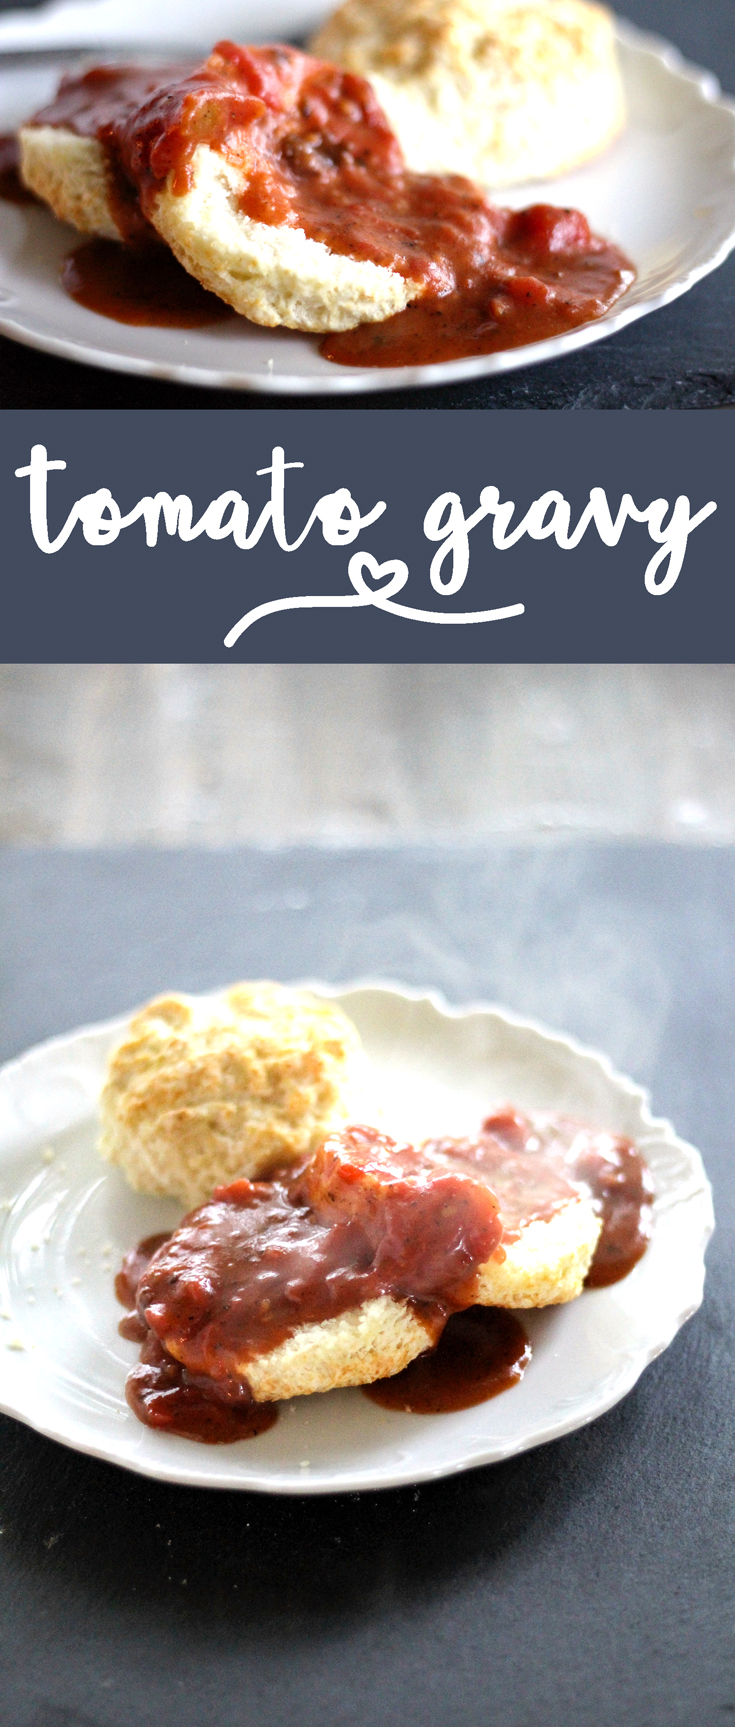 It doesn't matter who you are or where you are from, Tomato Gravy is good Southern food. #tomatogravy #gravyrecipe #southerncooking